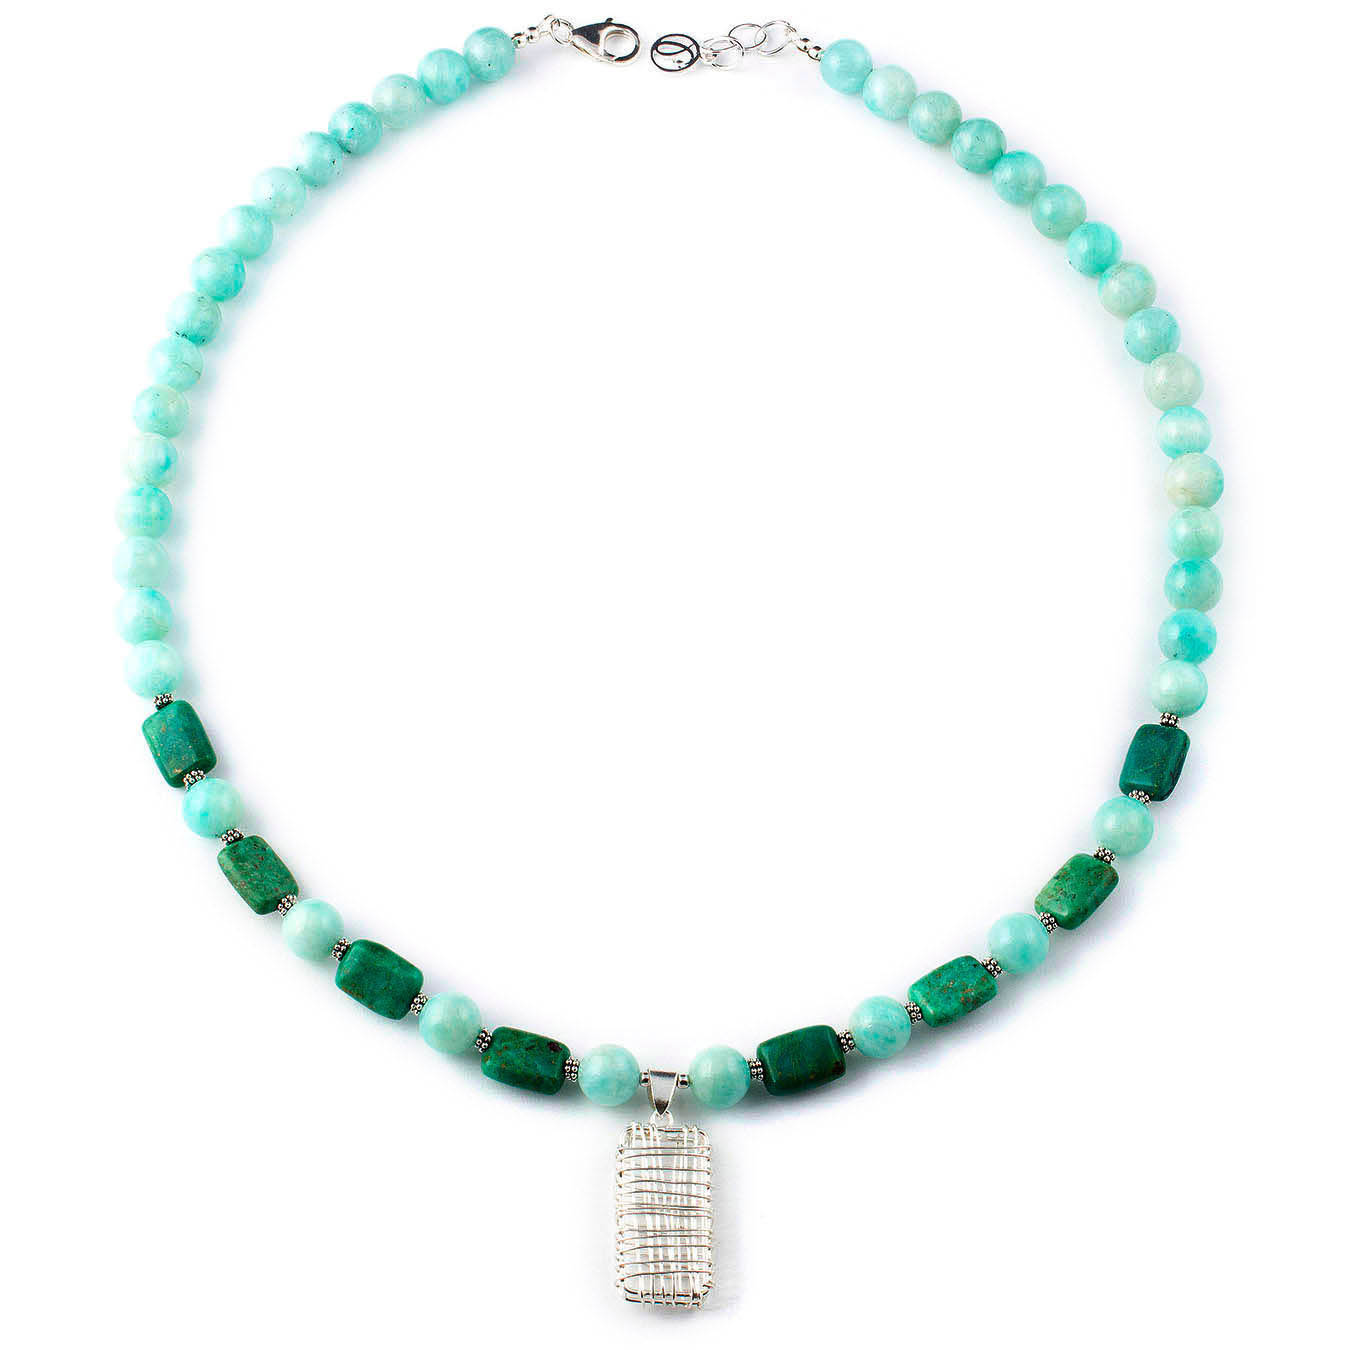 Handcrafted green chrysocolla and blue amazonite stone necklace